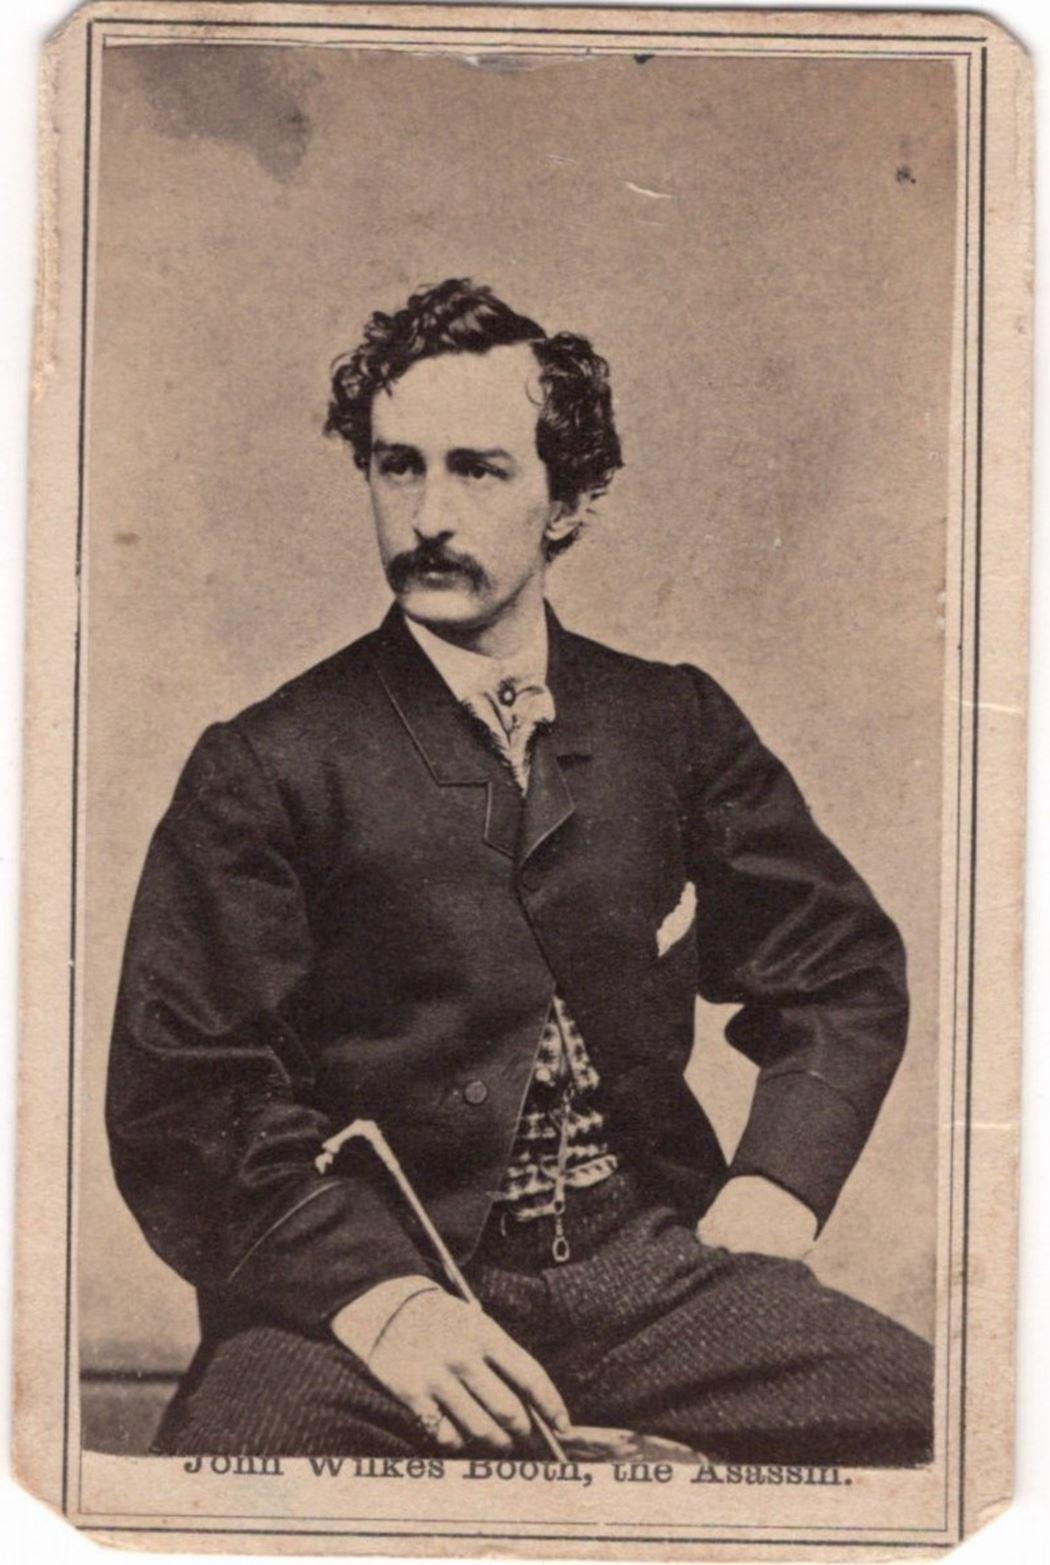 John Wilkes Booth and his Brother Edwin Booth 4 CDVs and Cabinet Cards